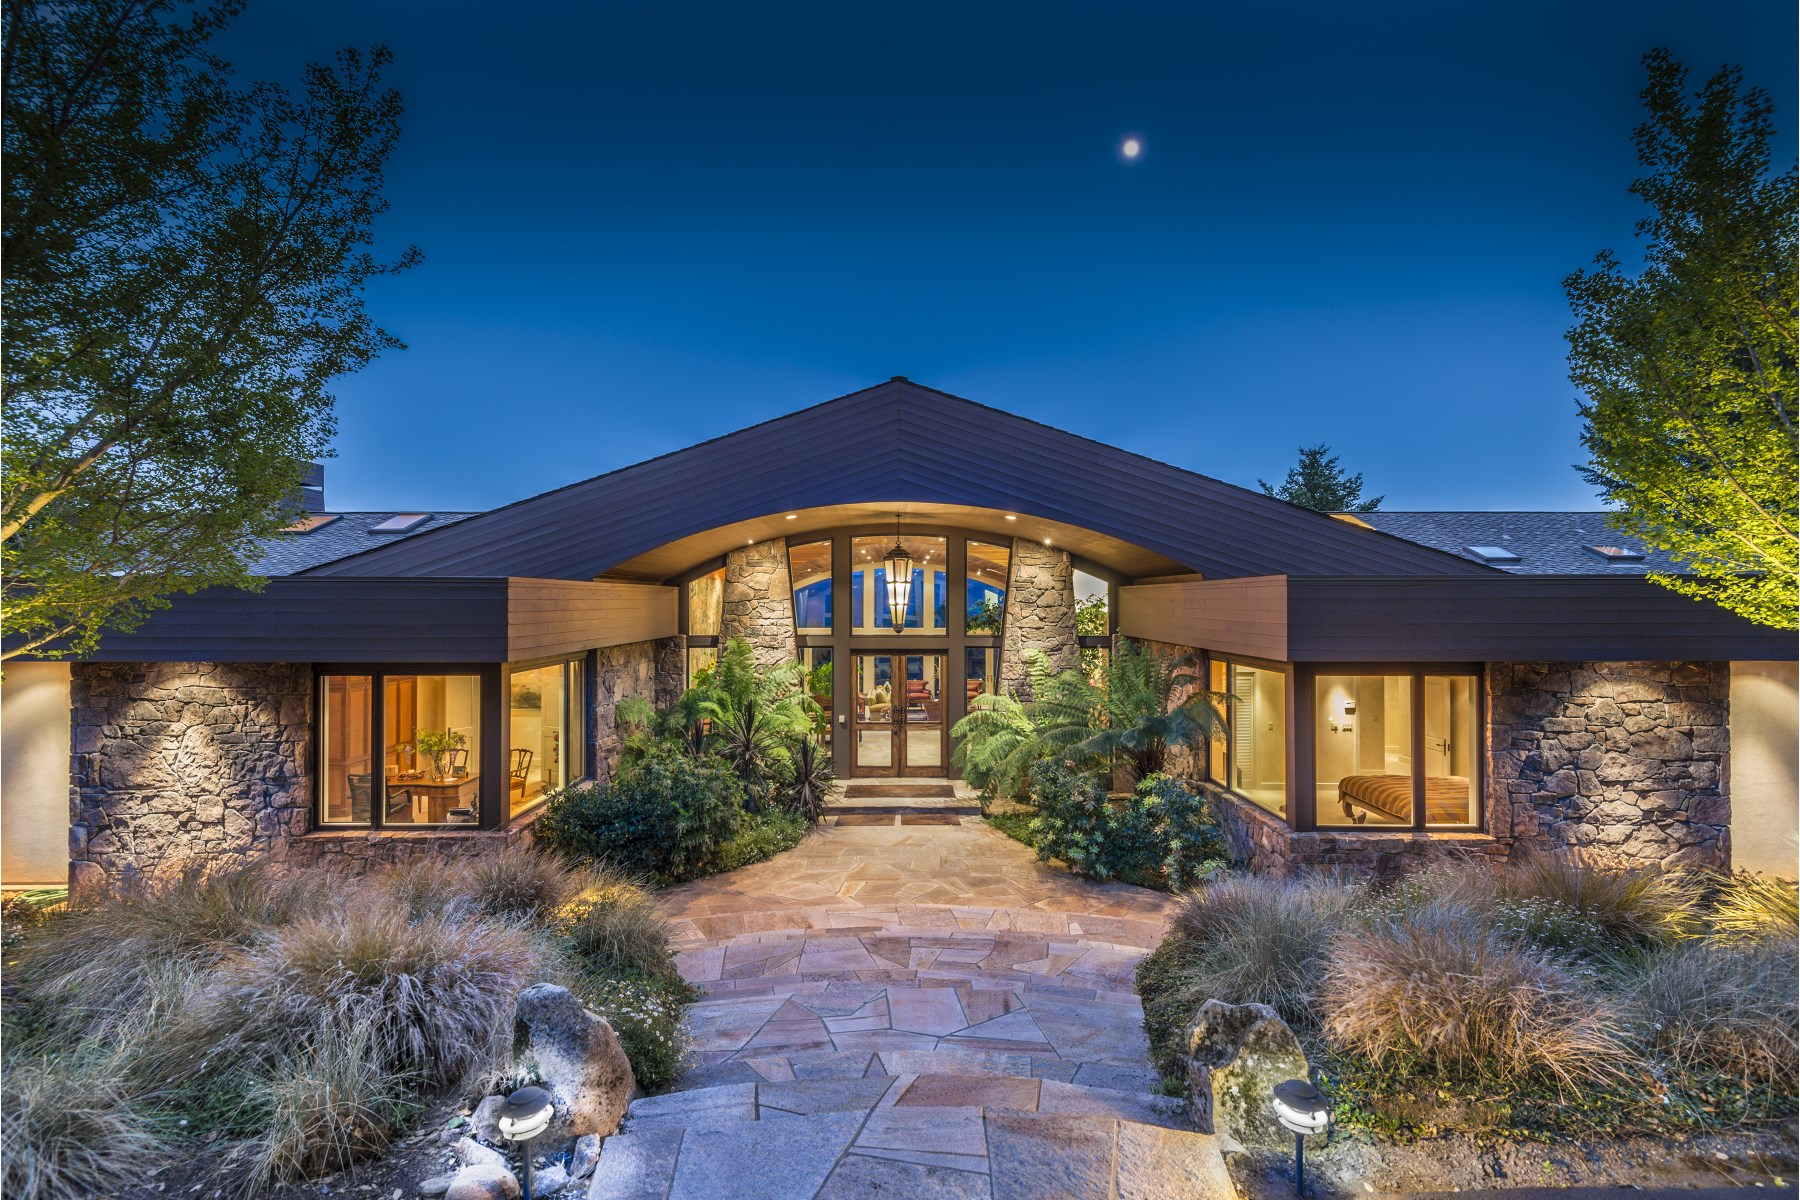 Single Family Home for Sale at Stunning Bennett Valley Estate Santa Rosa, California 95404 United States